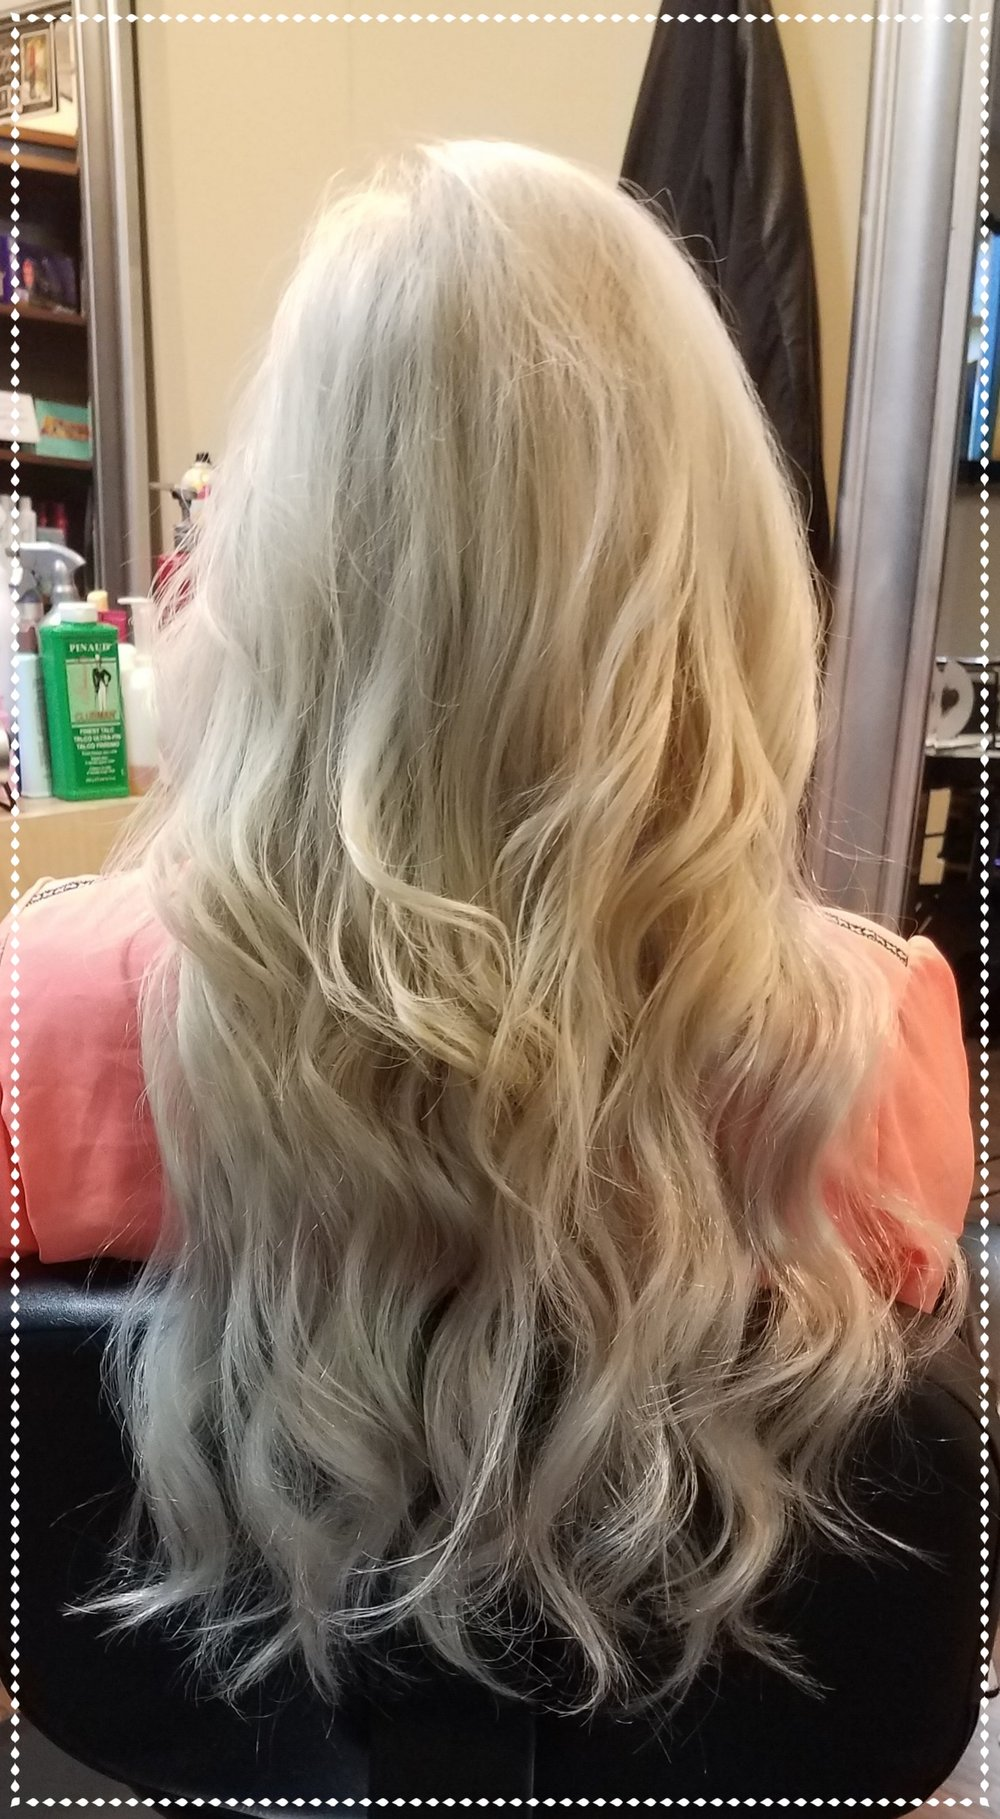 Hair Extensions!!! Kayla!! You look amazing!!!